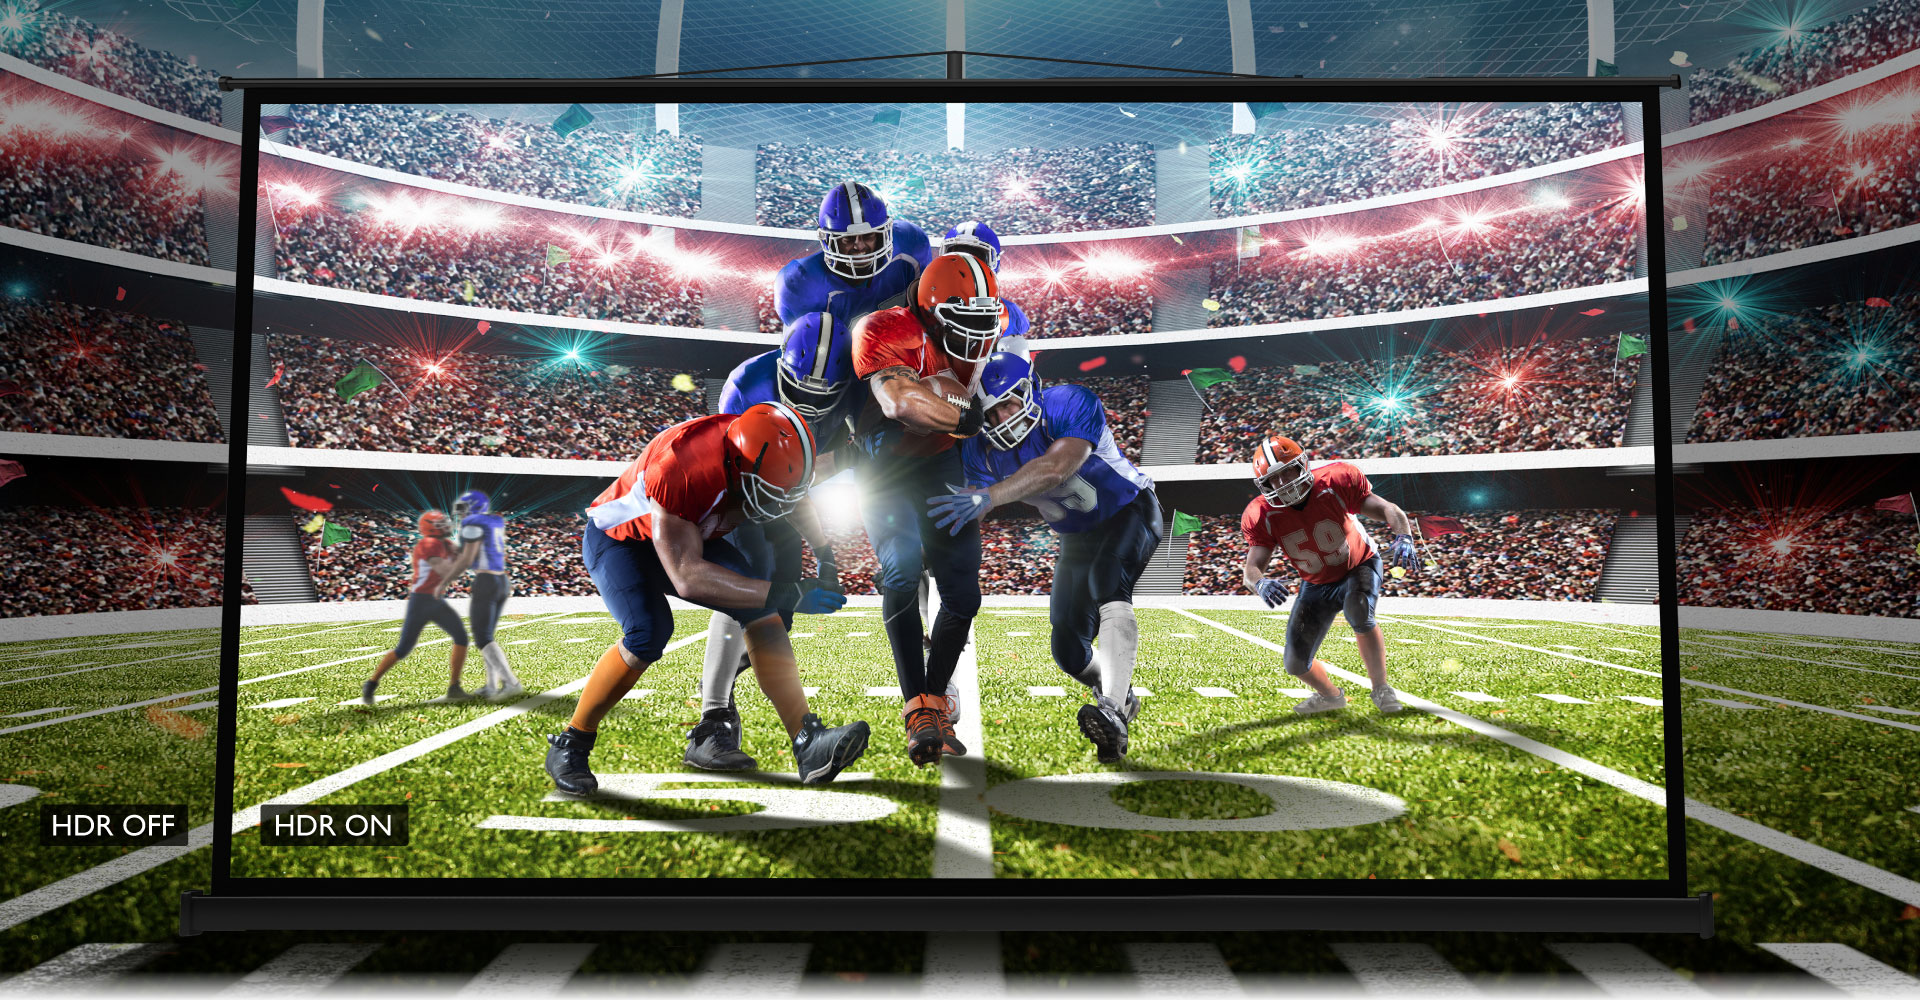 BenQ's sports projector provides you a high-quality entertainment experience by 4k HDR technology.